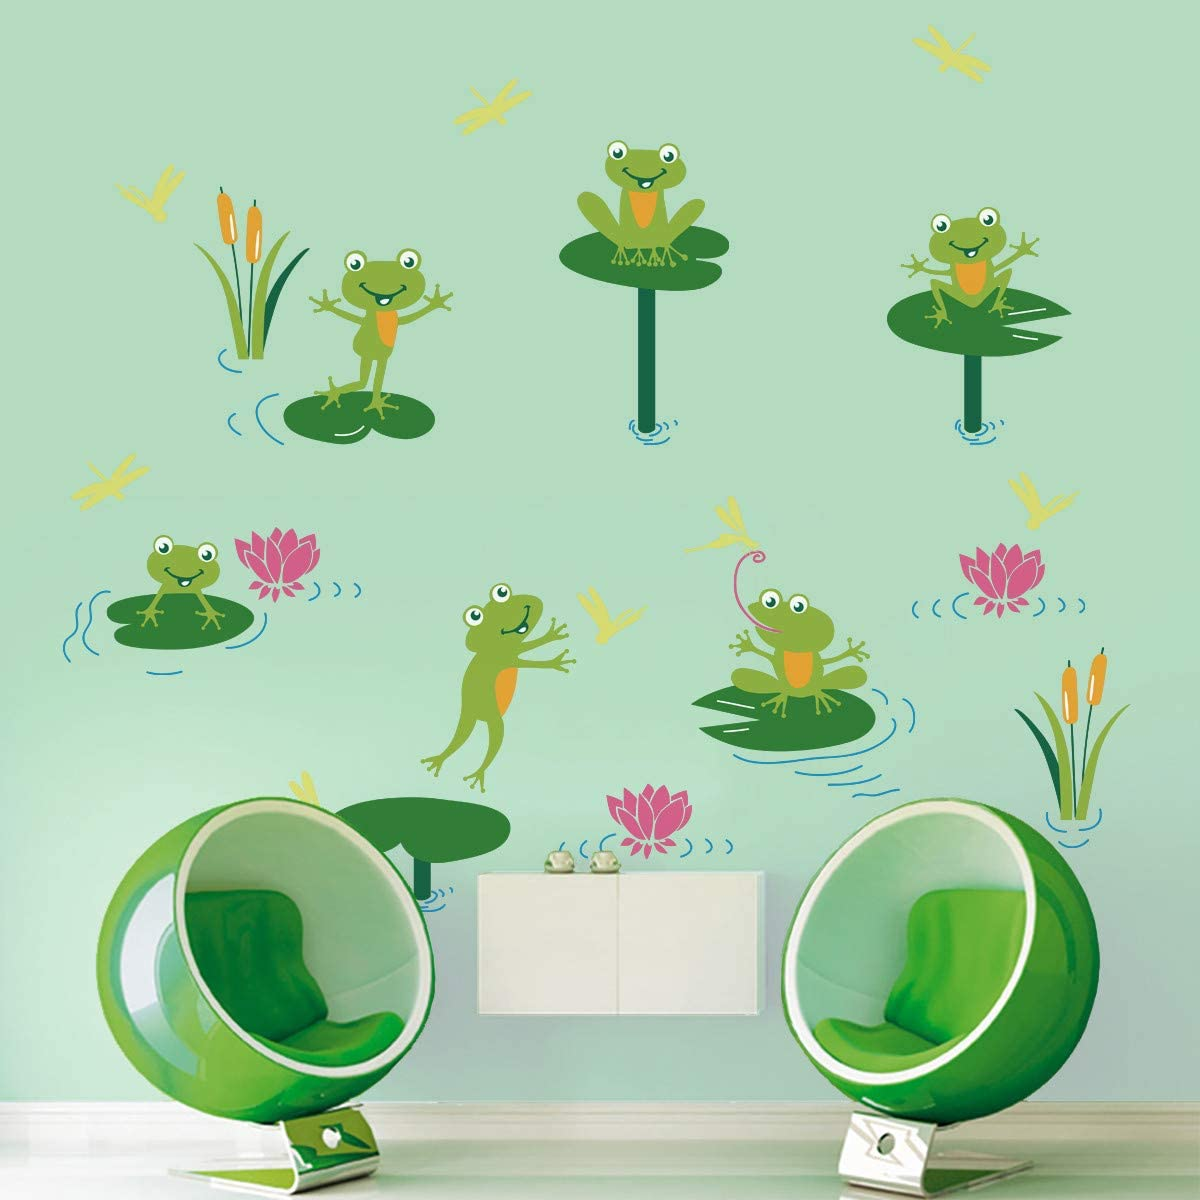 ufengke Pond Frogs Wall Stickers DIY Removable Lotus Leaf Wall Decals Art Decor for Kids Nursery Bedroom Living Room